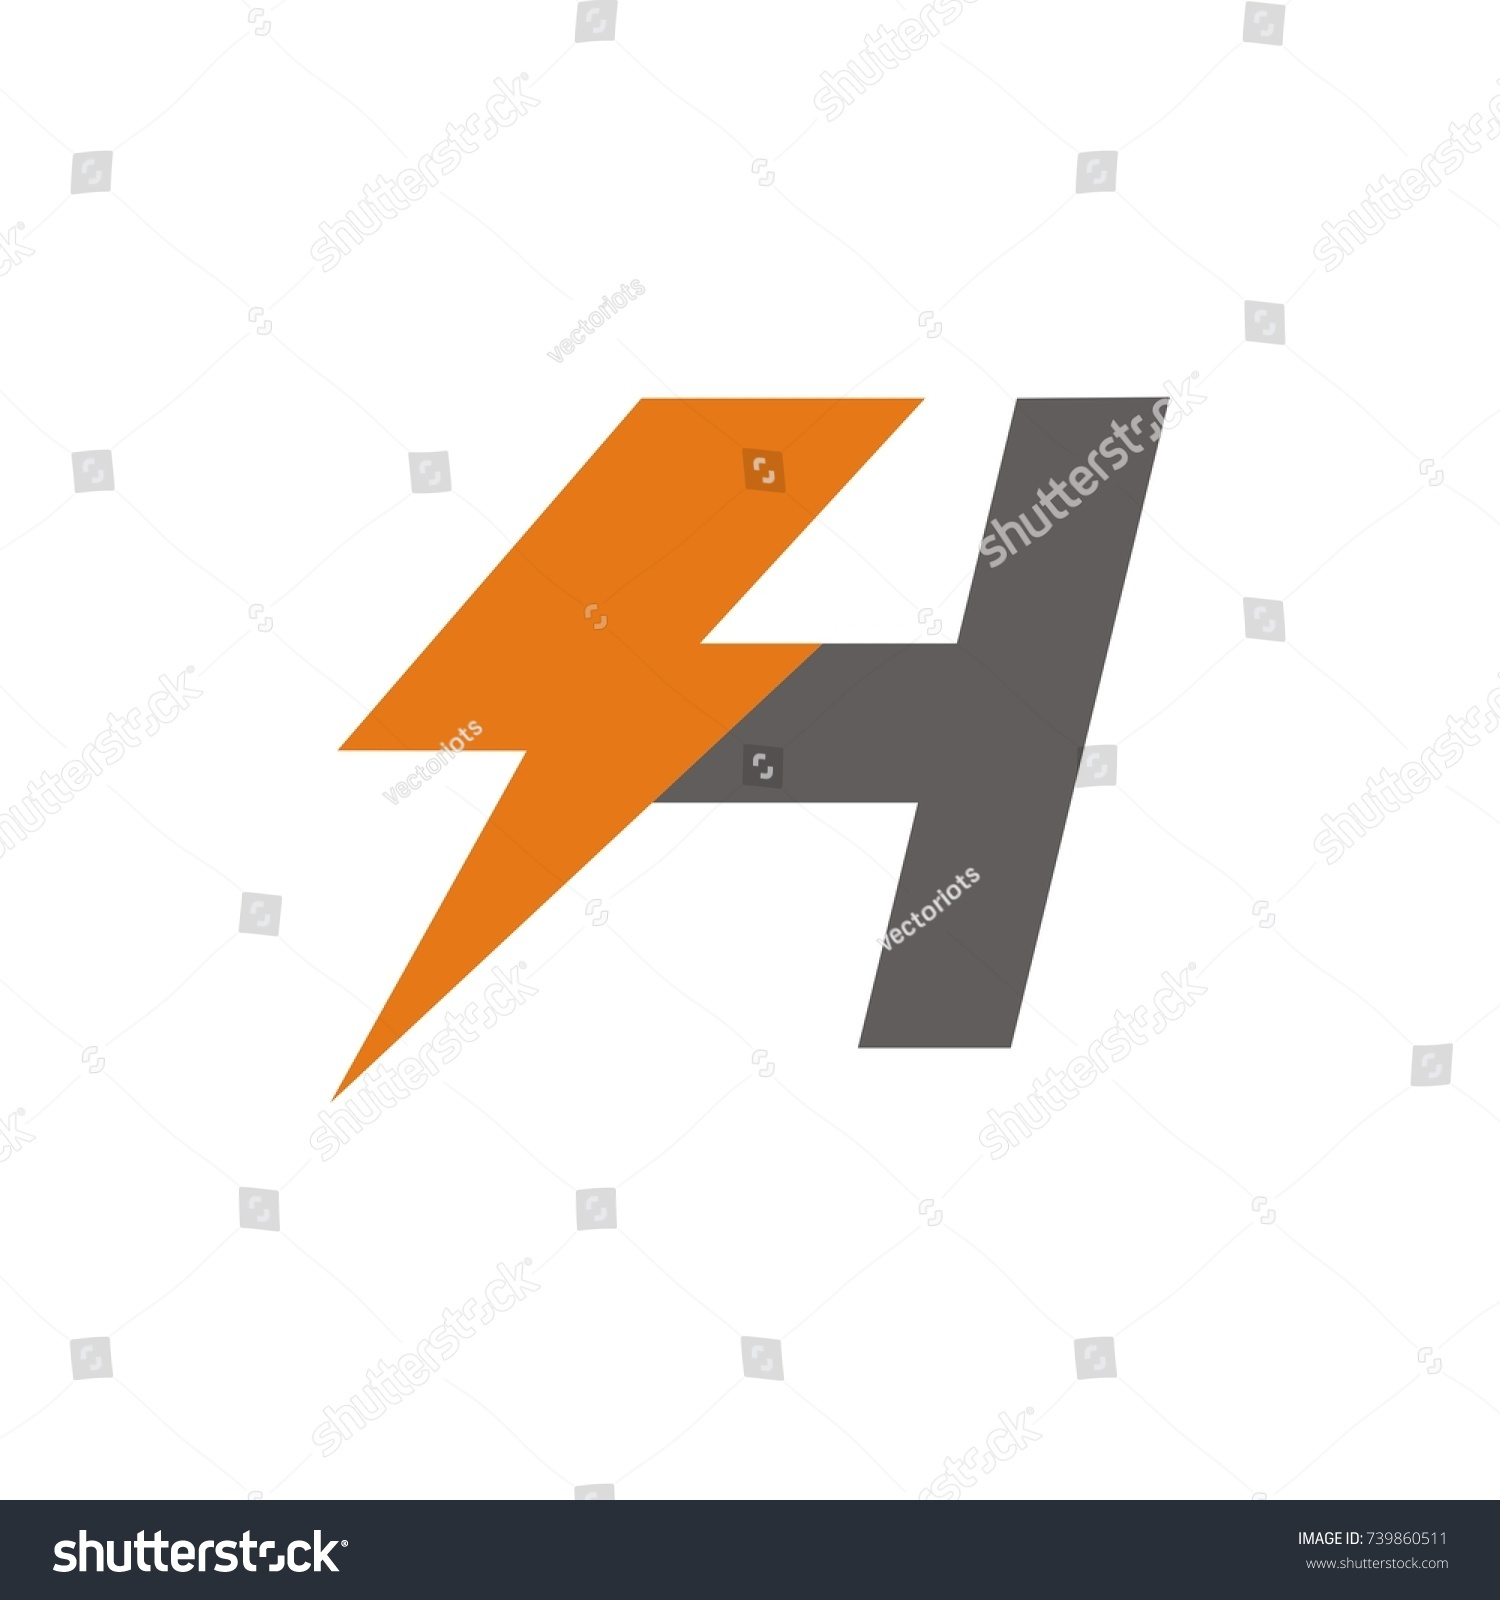 Amazing lightning bolt template pictures inspiration entry level zeus lightning bolt clipart 37 h logo initial letter design template stock vector 739860511 buycottarizona Image collections